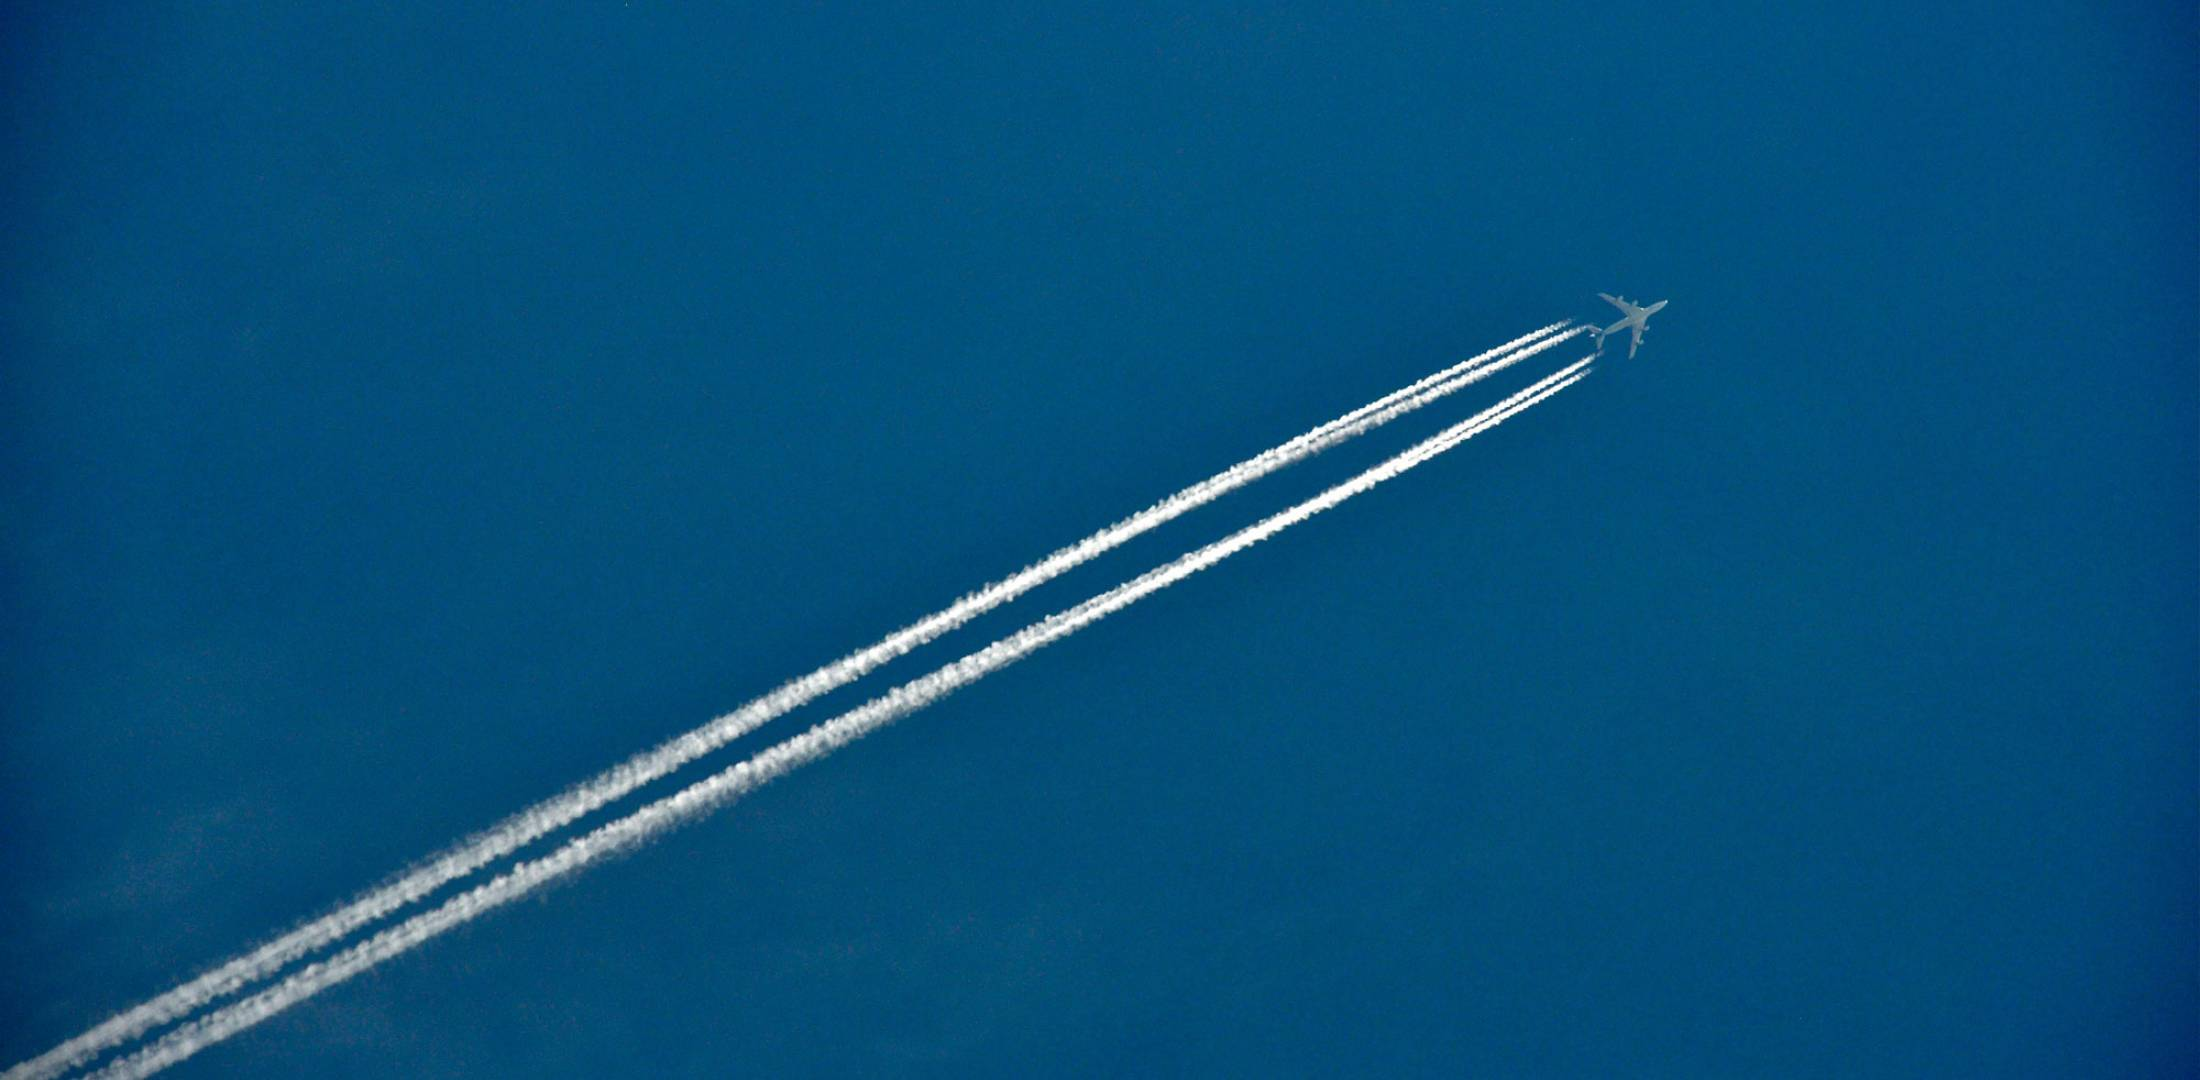 contrails on blue sky